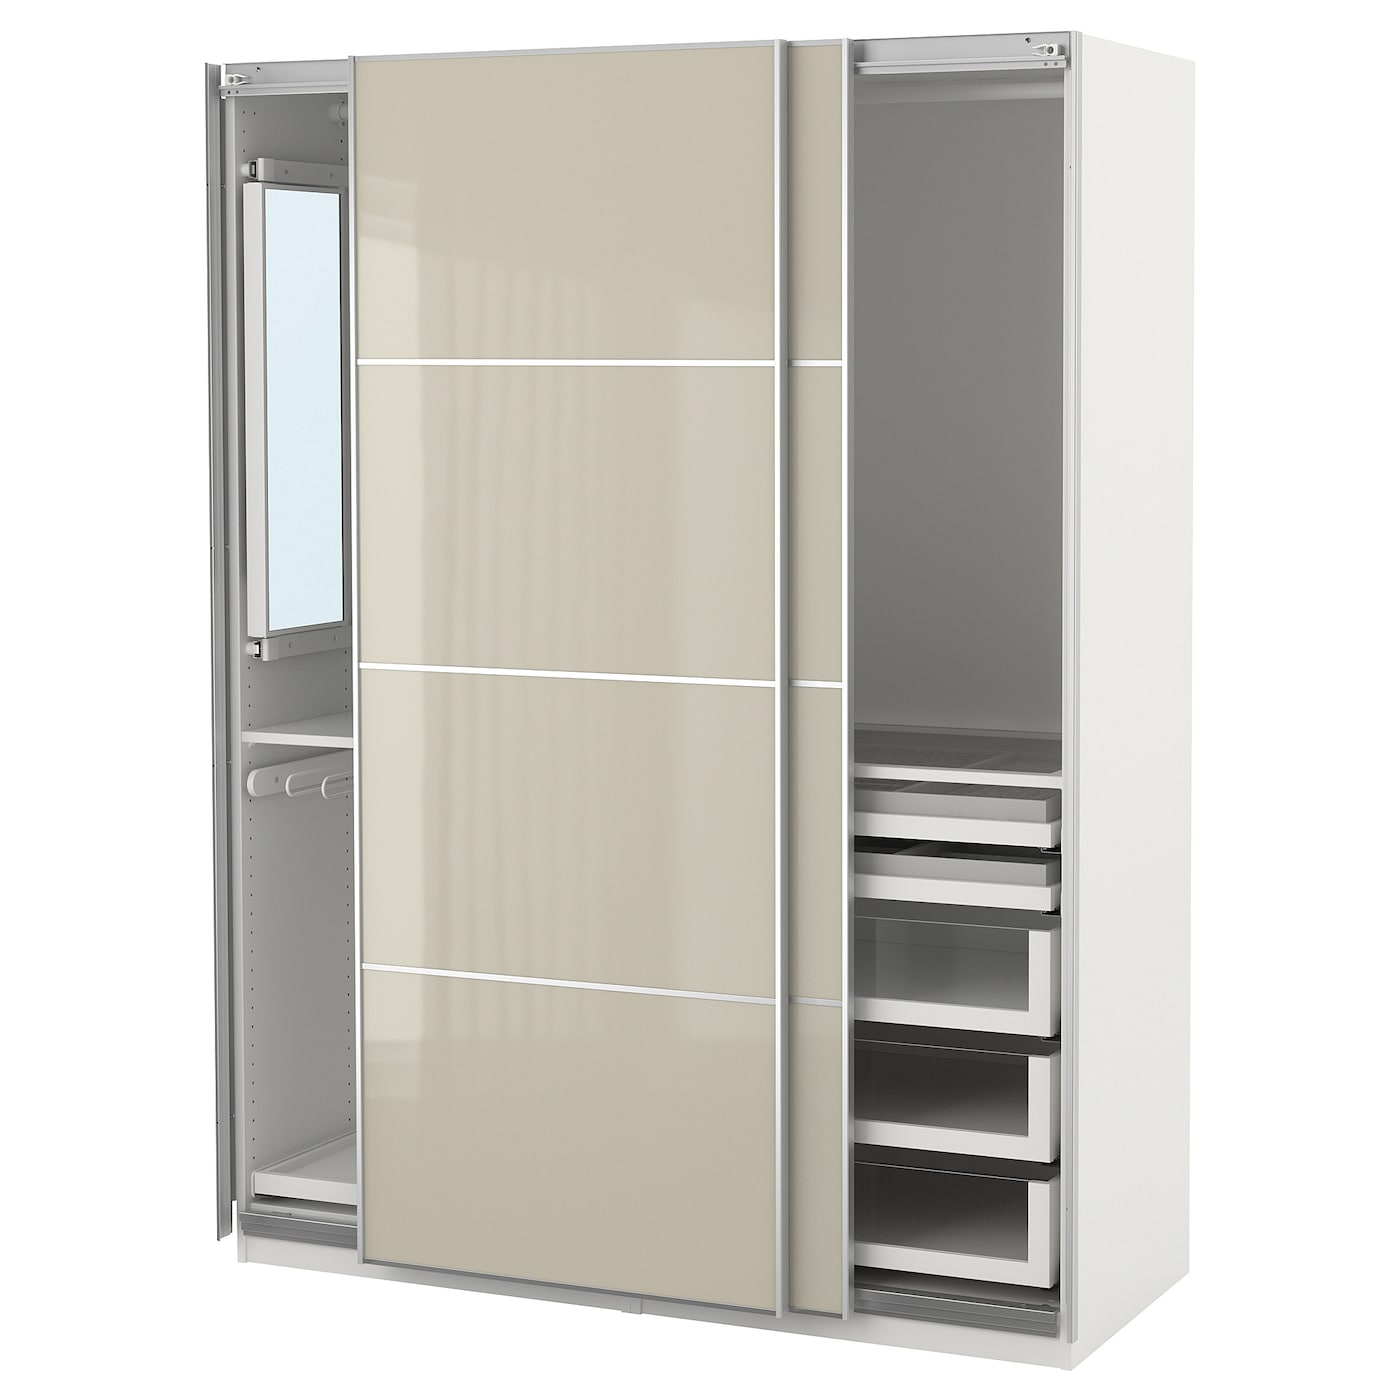 Ikea Pax Wardrobe 10 Year Guarantee Read About The Terms